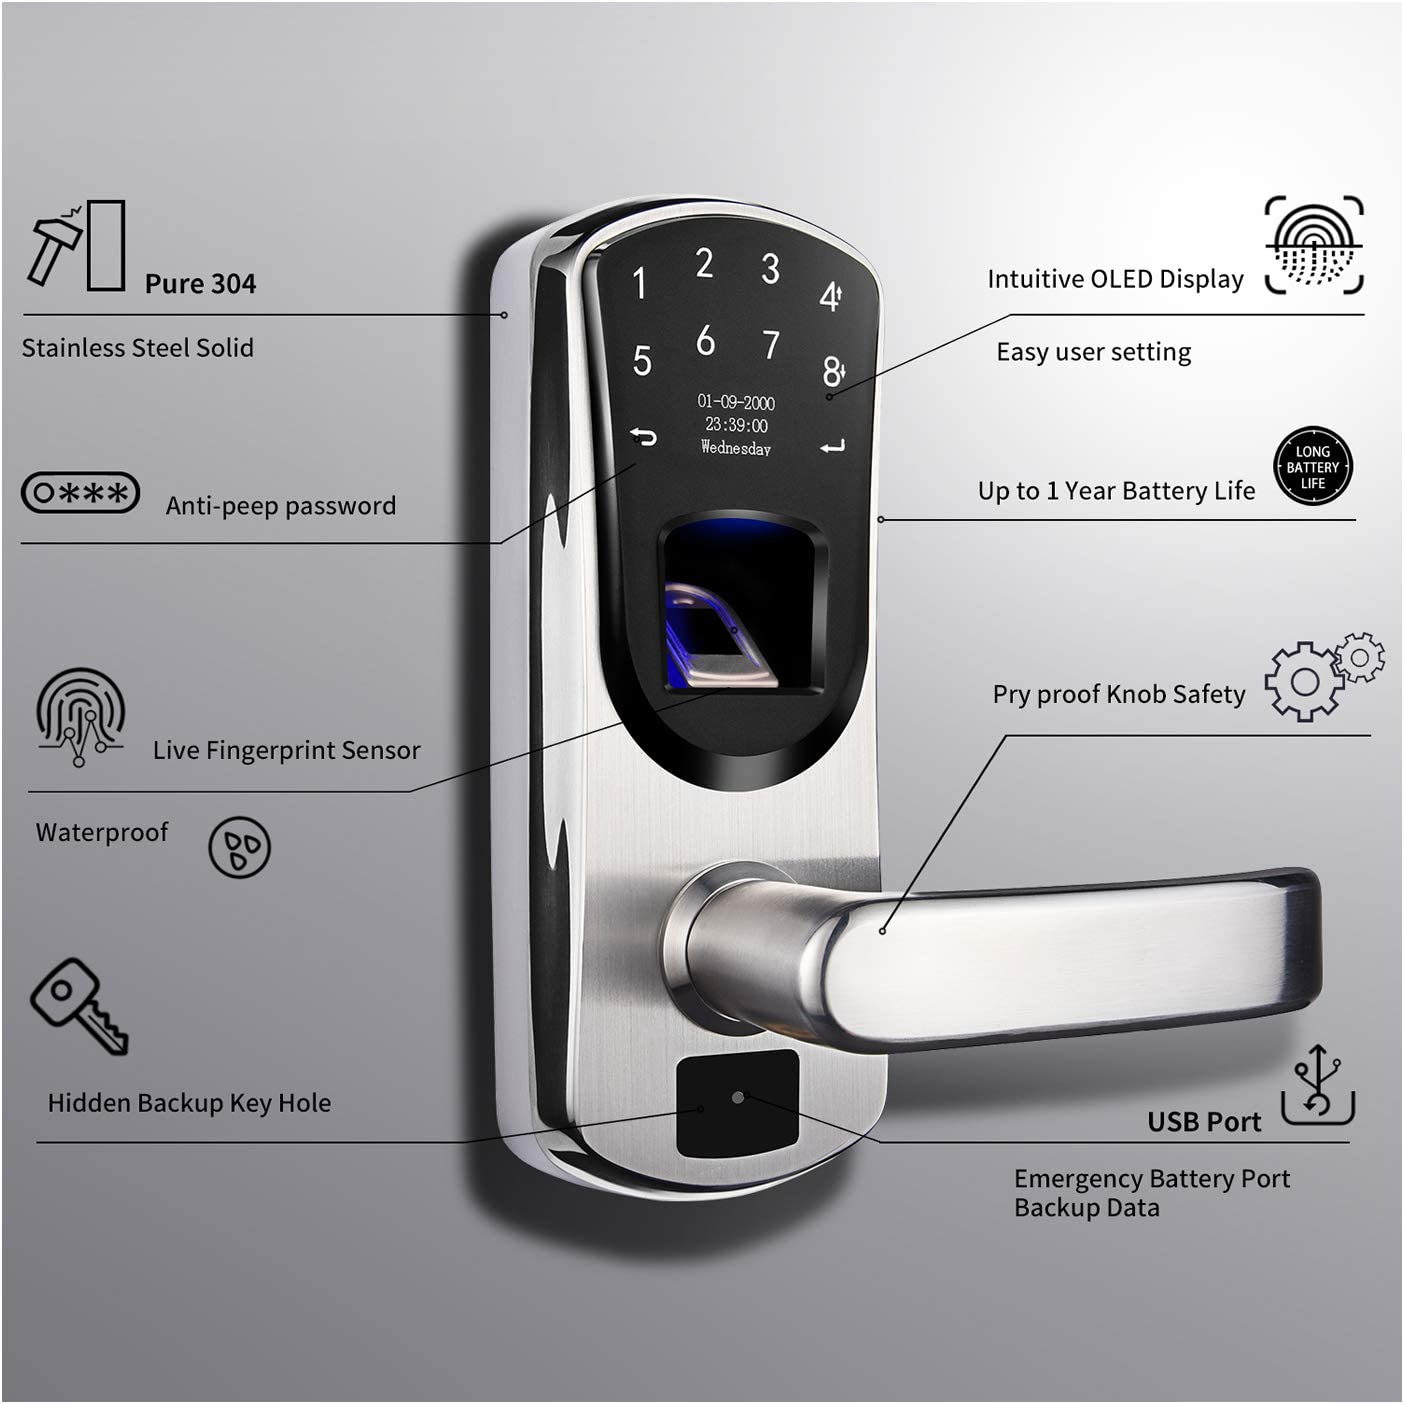 Smart Fingerprint Stainless Steel Touchscreen with Electronic Keypads Two-Factor Authentication WeJupit V8 Keyless Entry Door Lock Left Handle Spare Key Digital Biometric Auto-Lock